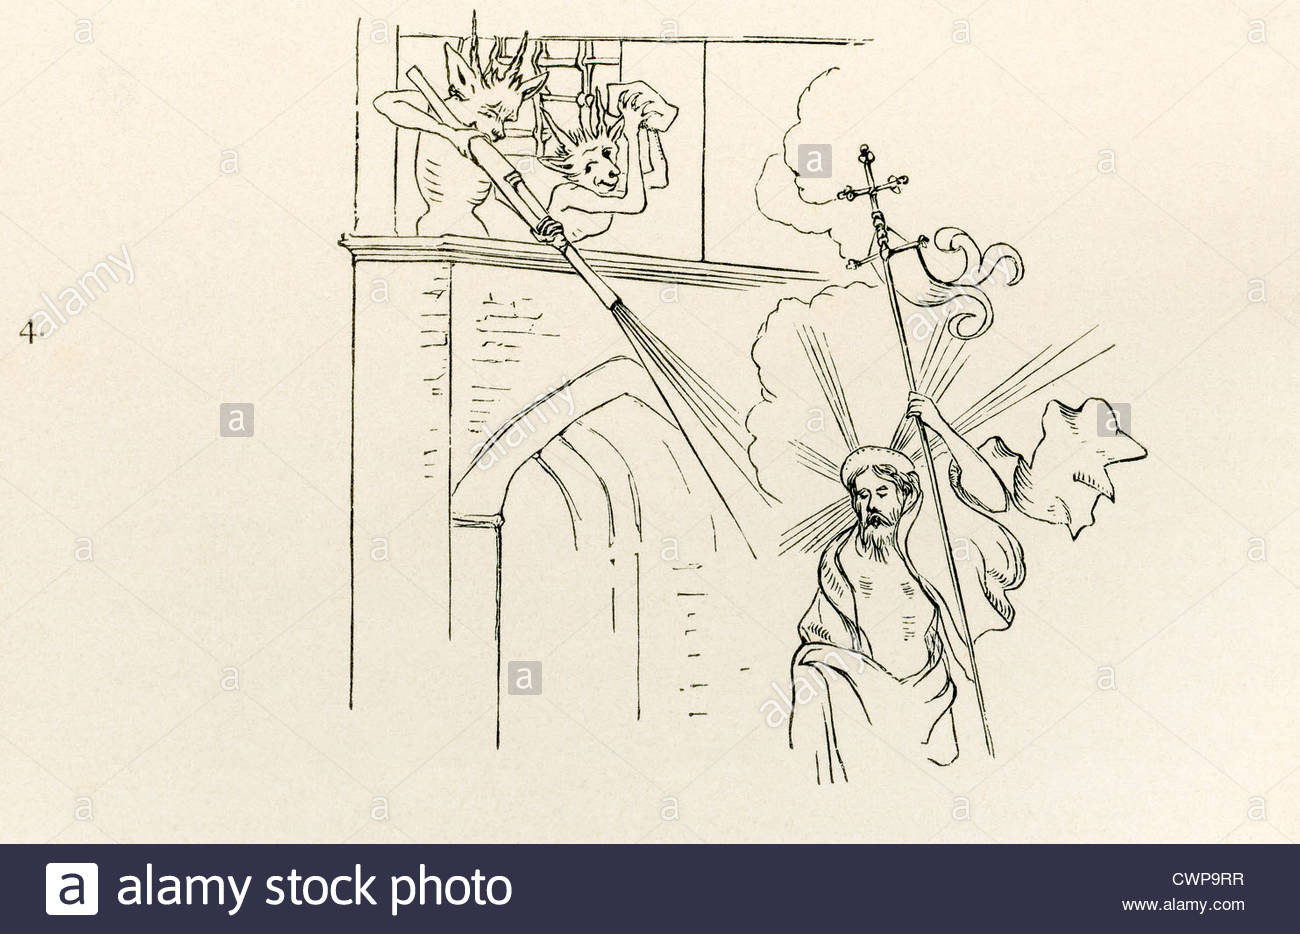 1300x934 Earliest Known Drawing Of Any Kind Of Hand Gun. From An Etching